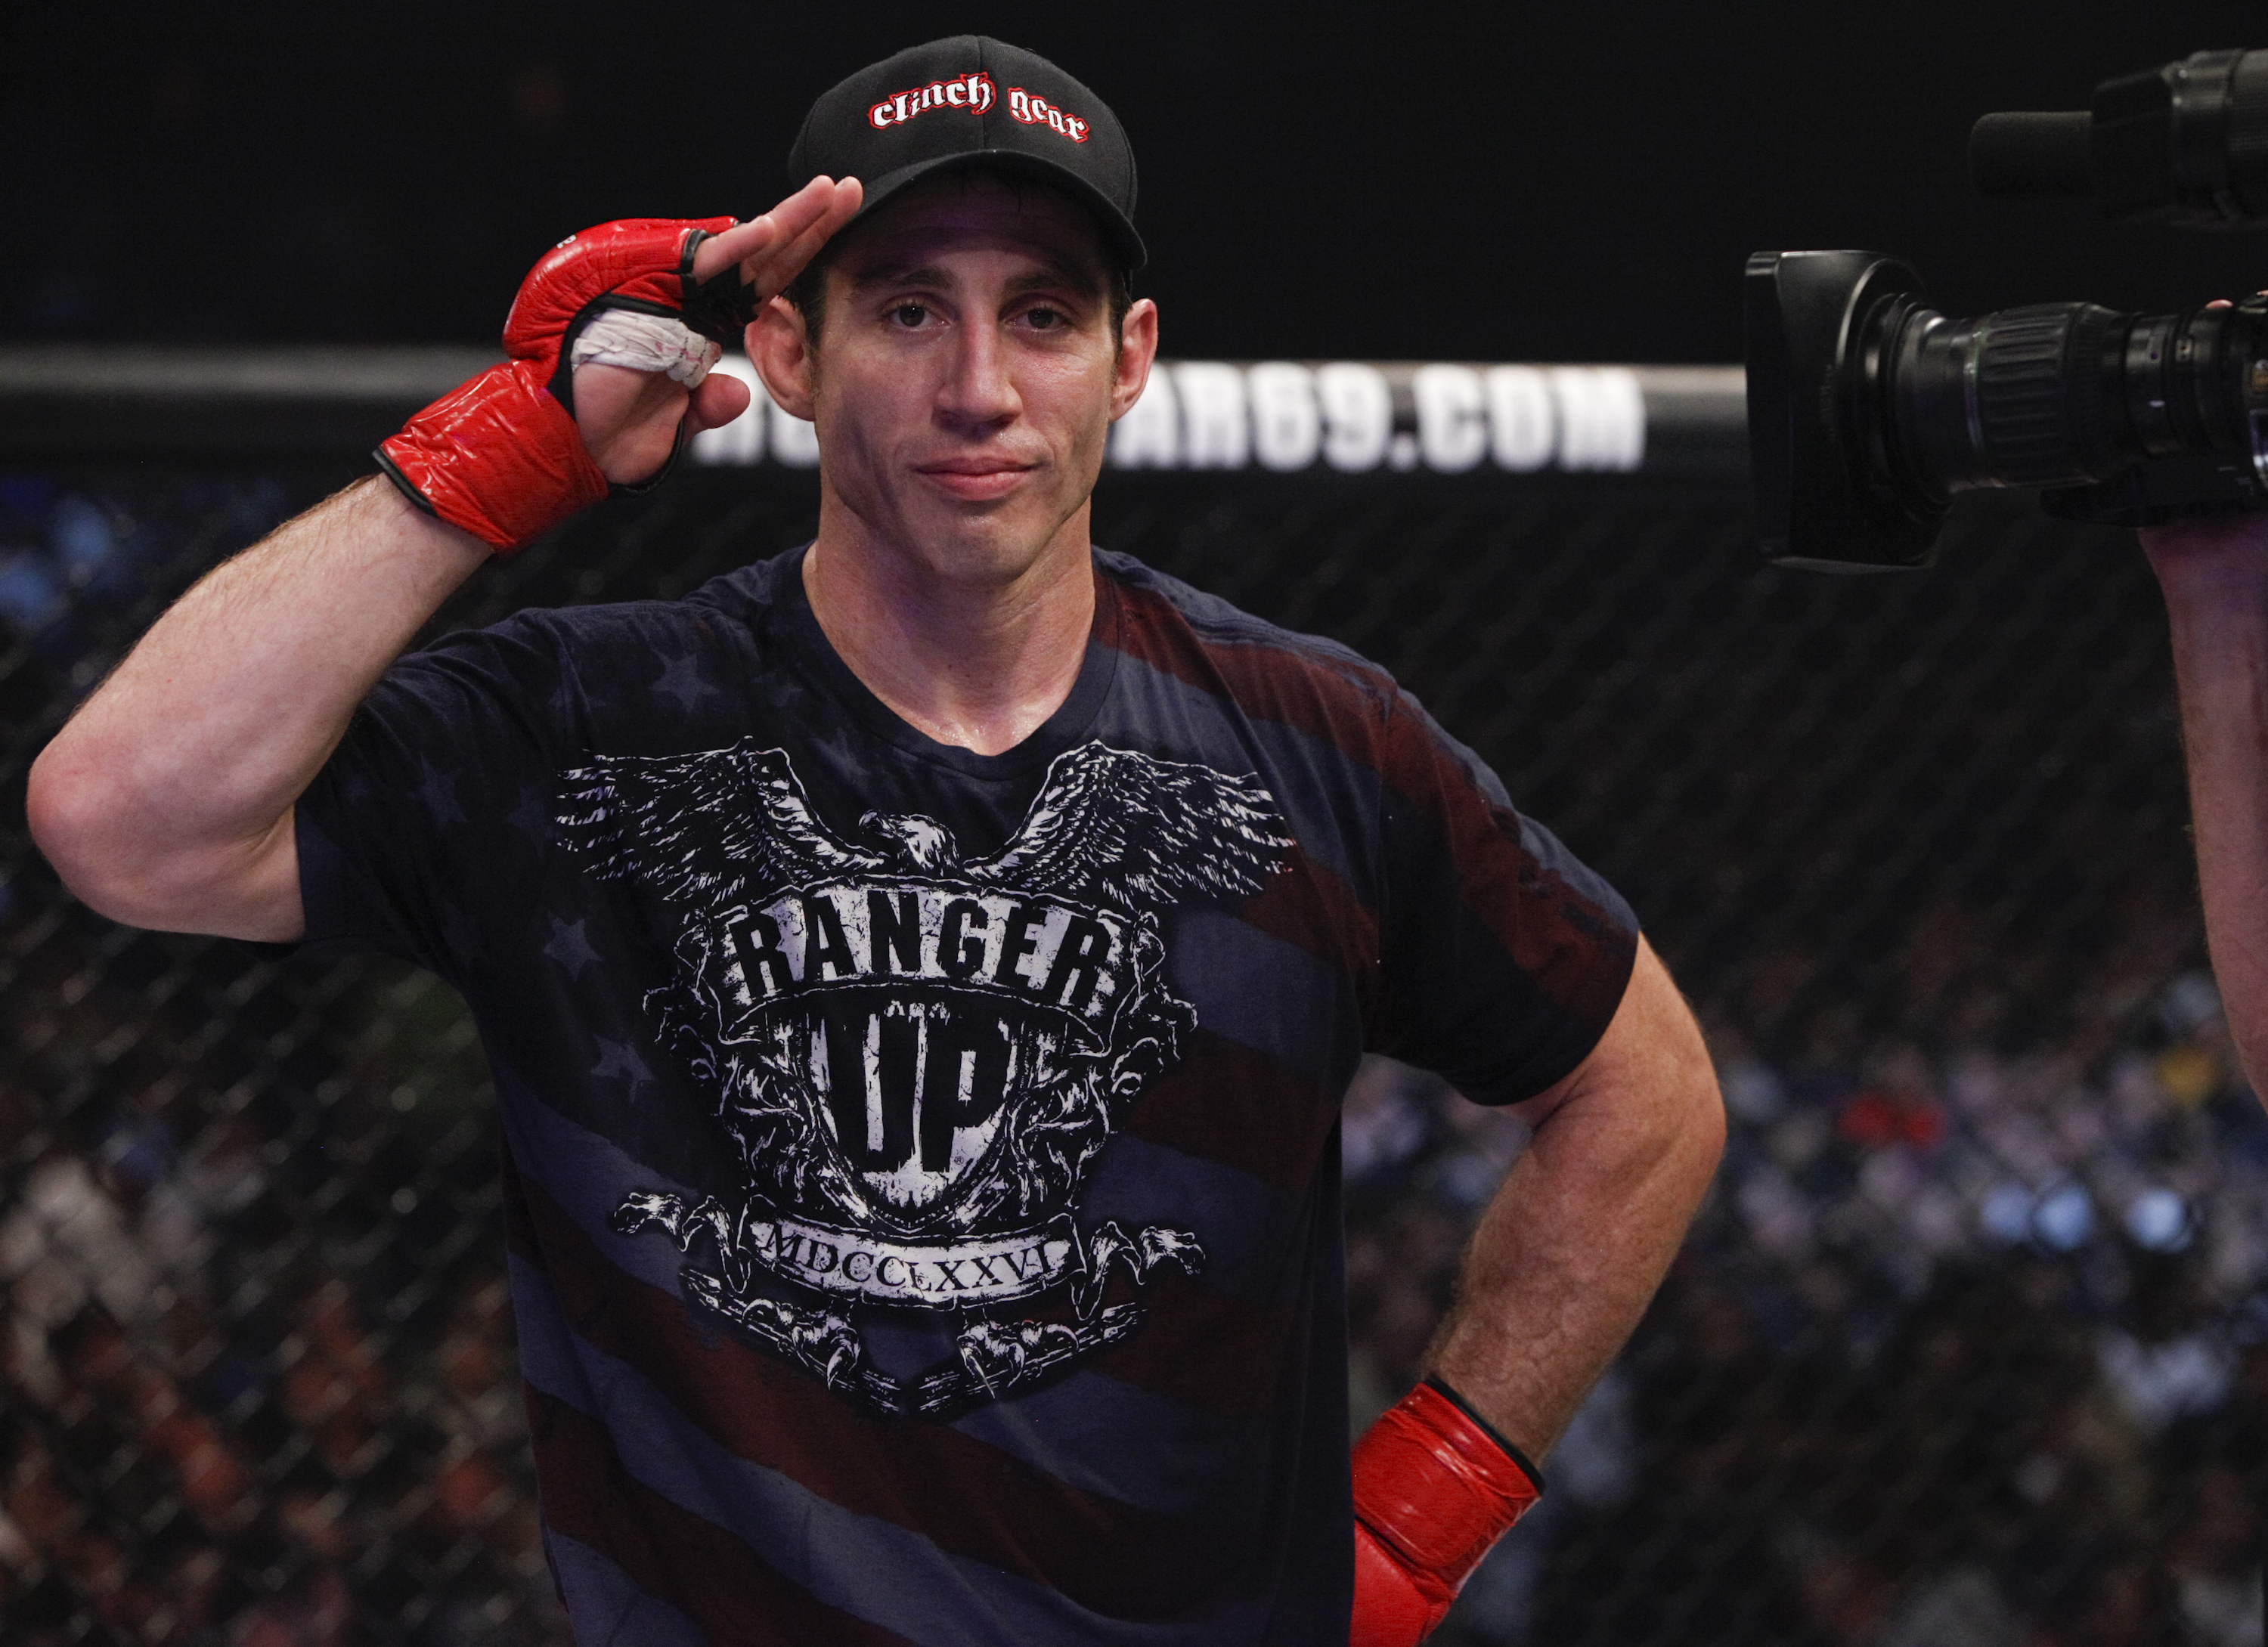 Tim Kennedy announces retirement from mixed martial arts